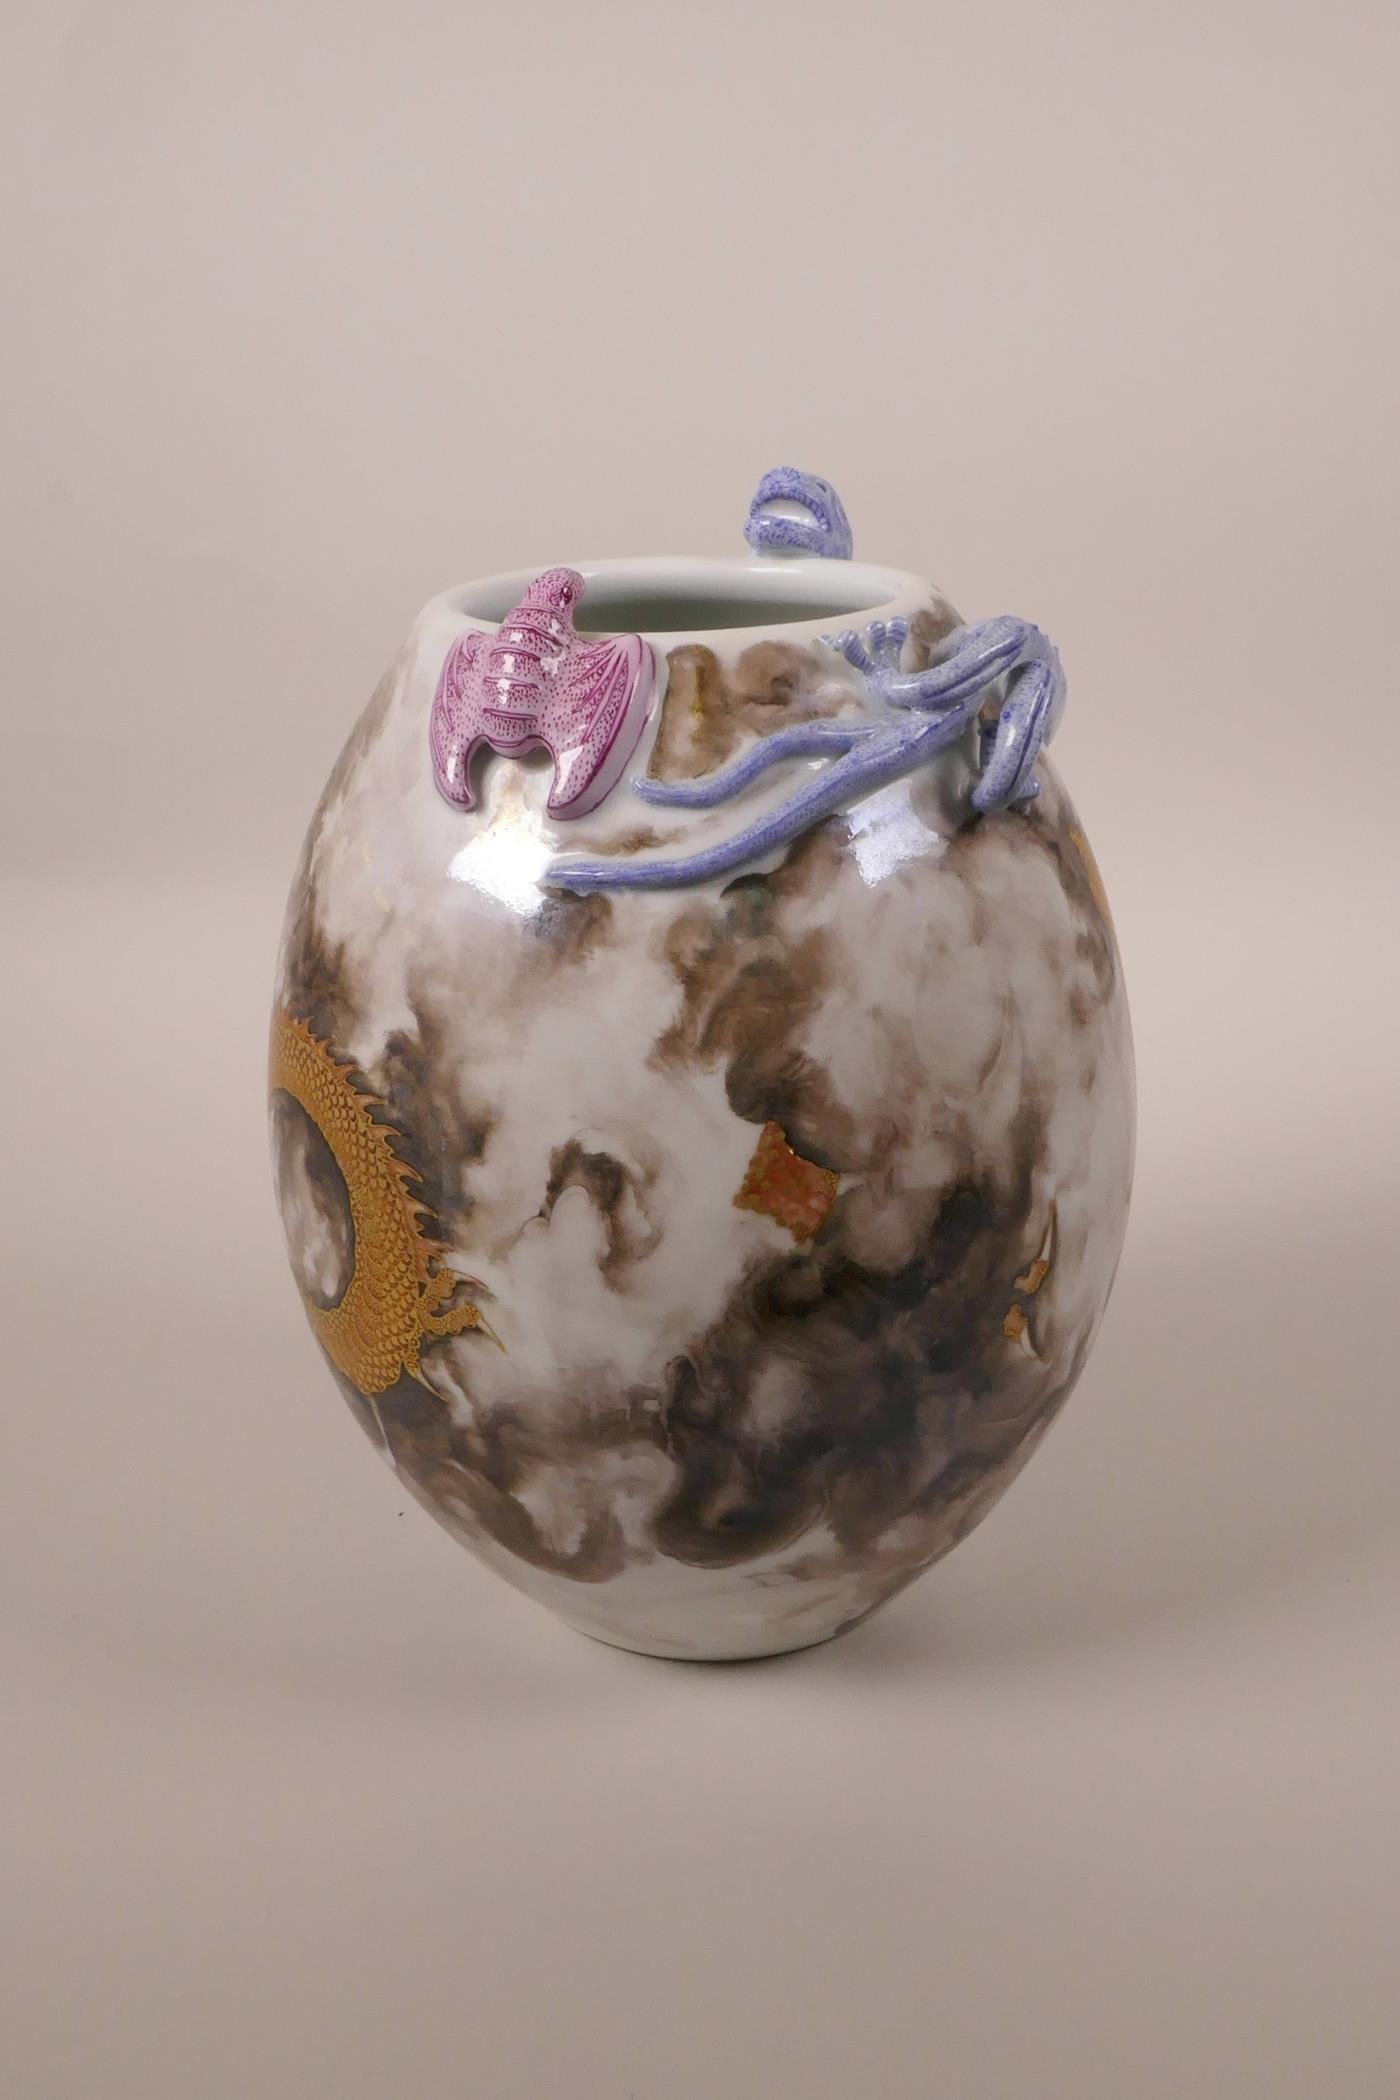 Lot 23 - A Chinese polychrome porcelain vase with applied dragon and bat decoration to the lip and red and